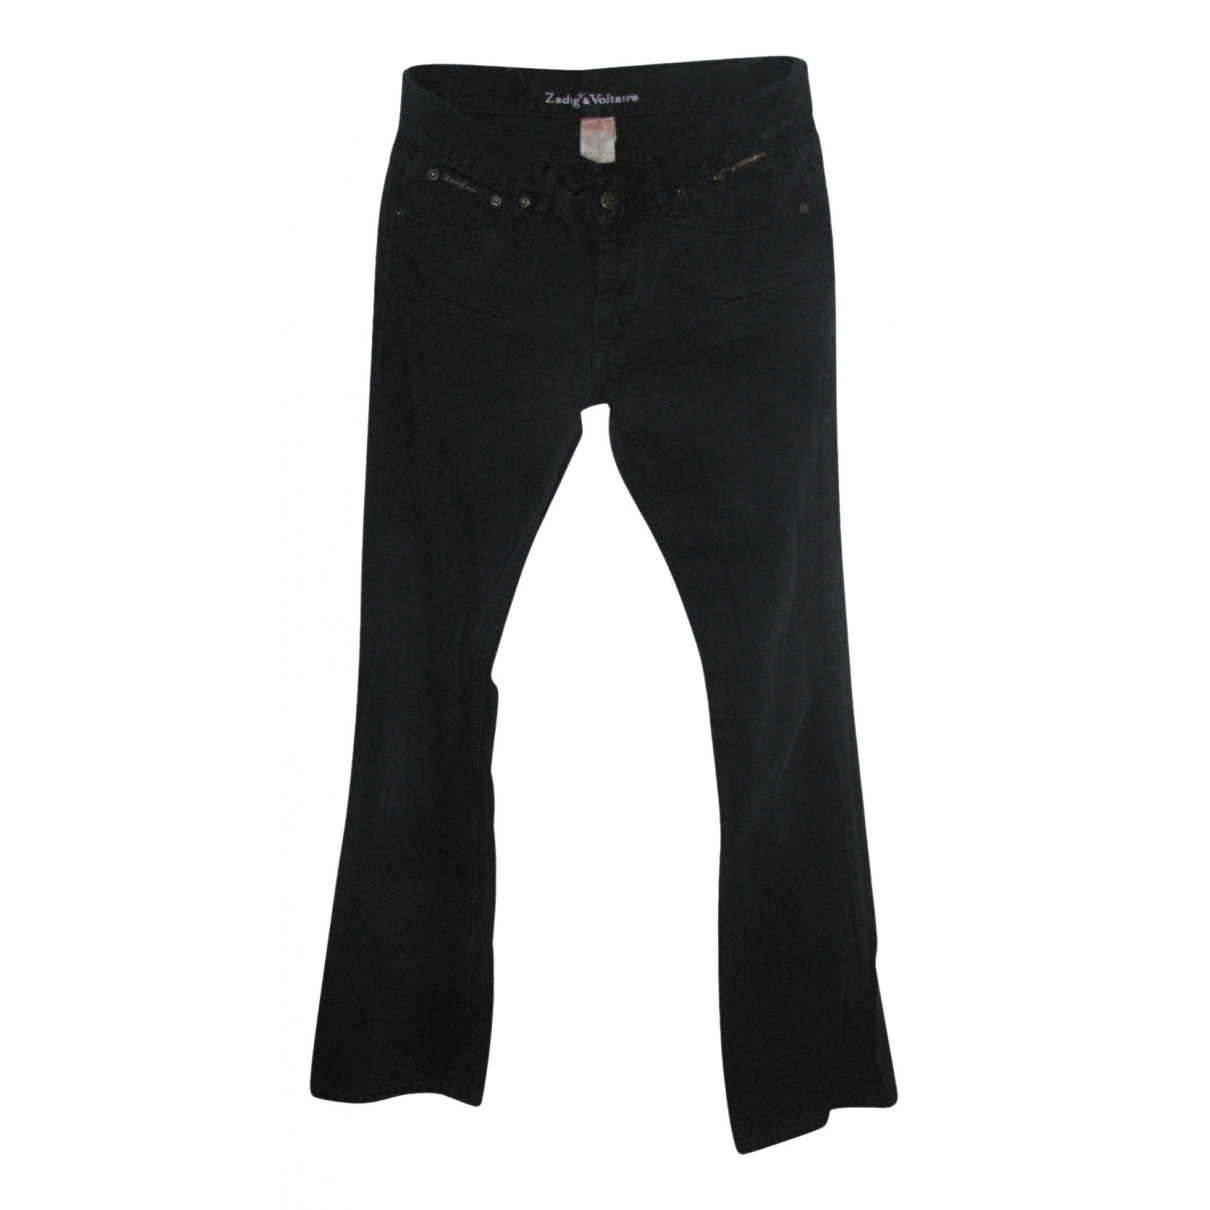 Zadig & Voltaire \N Black Denim - Jeans Jeans for Women 38 FR